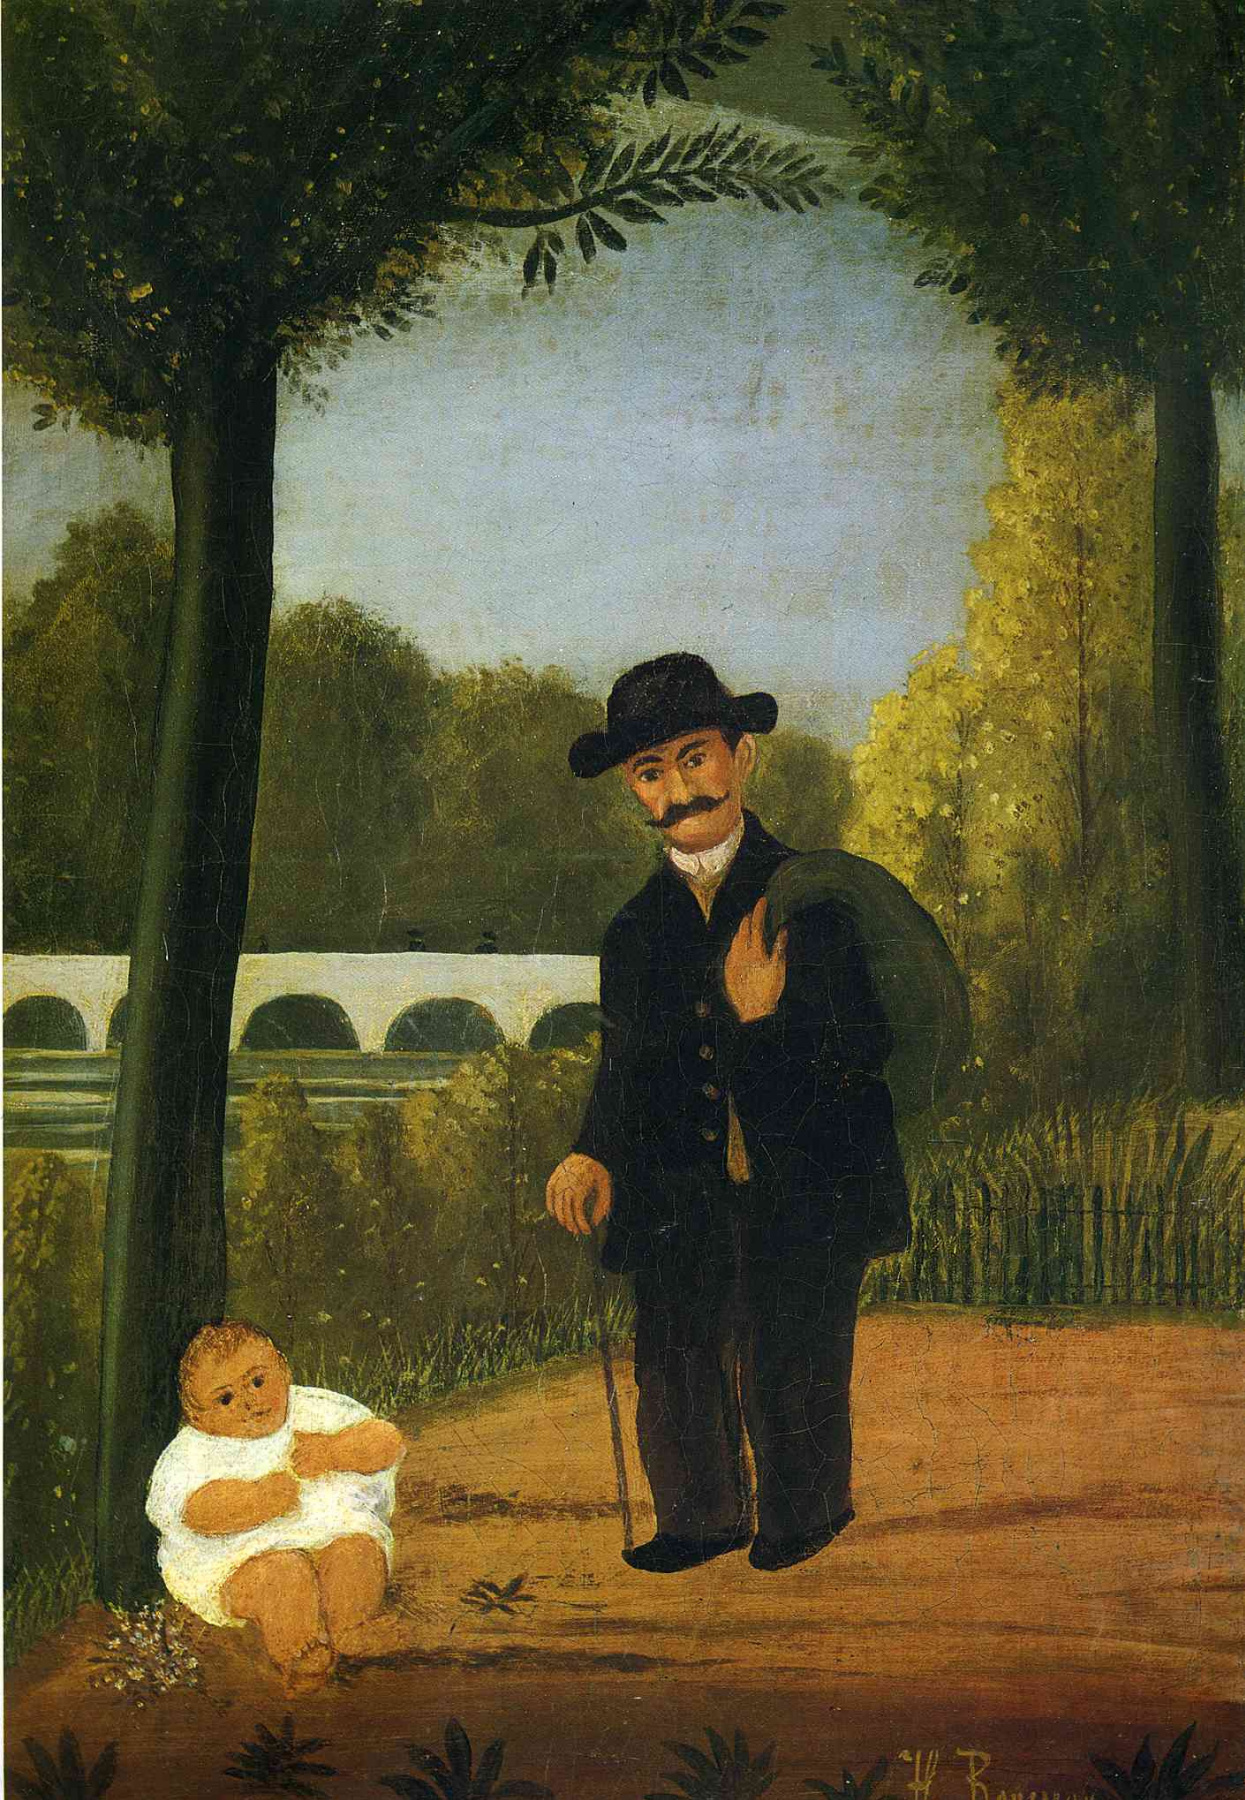 Henri Rousseau. The man and the child